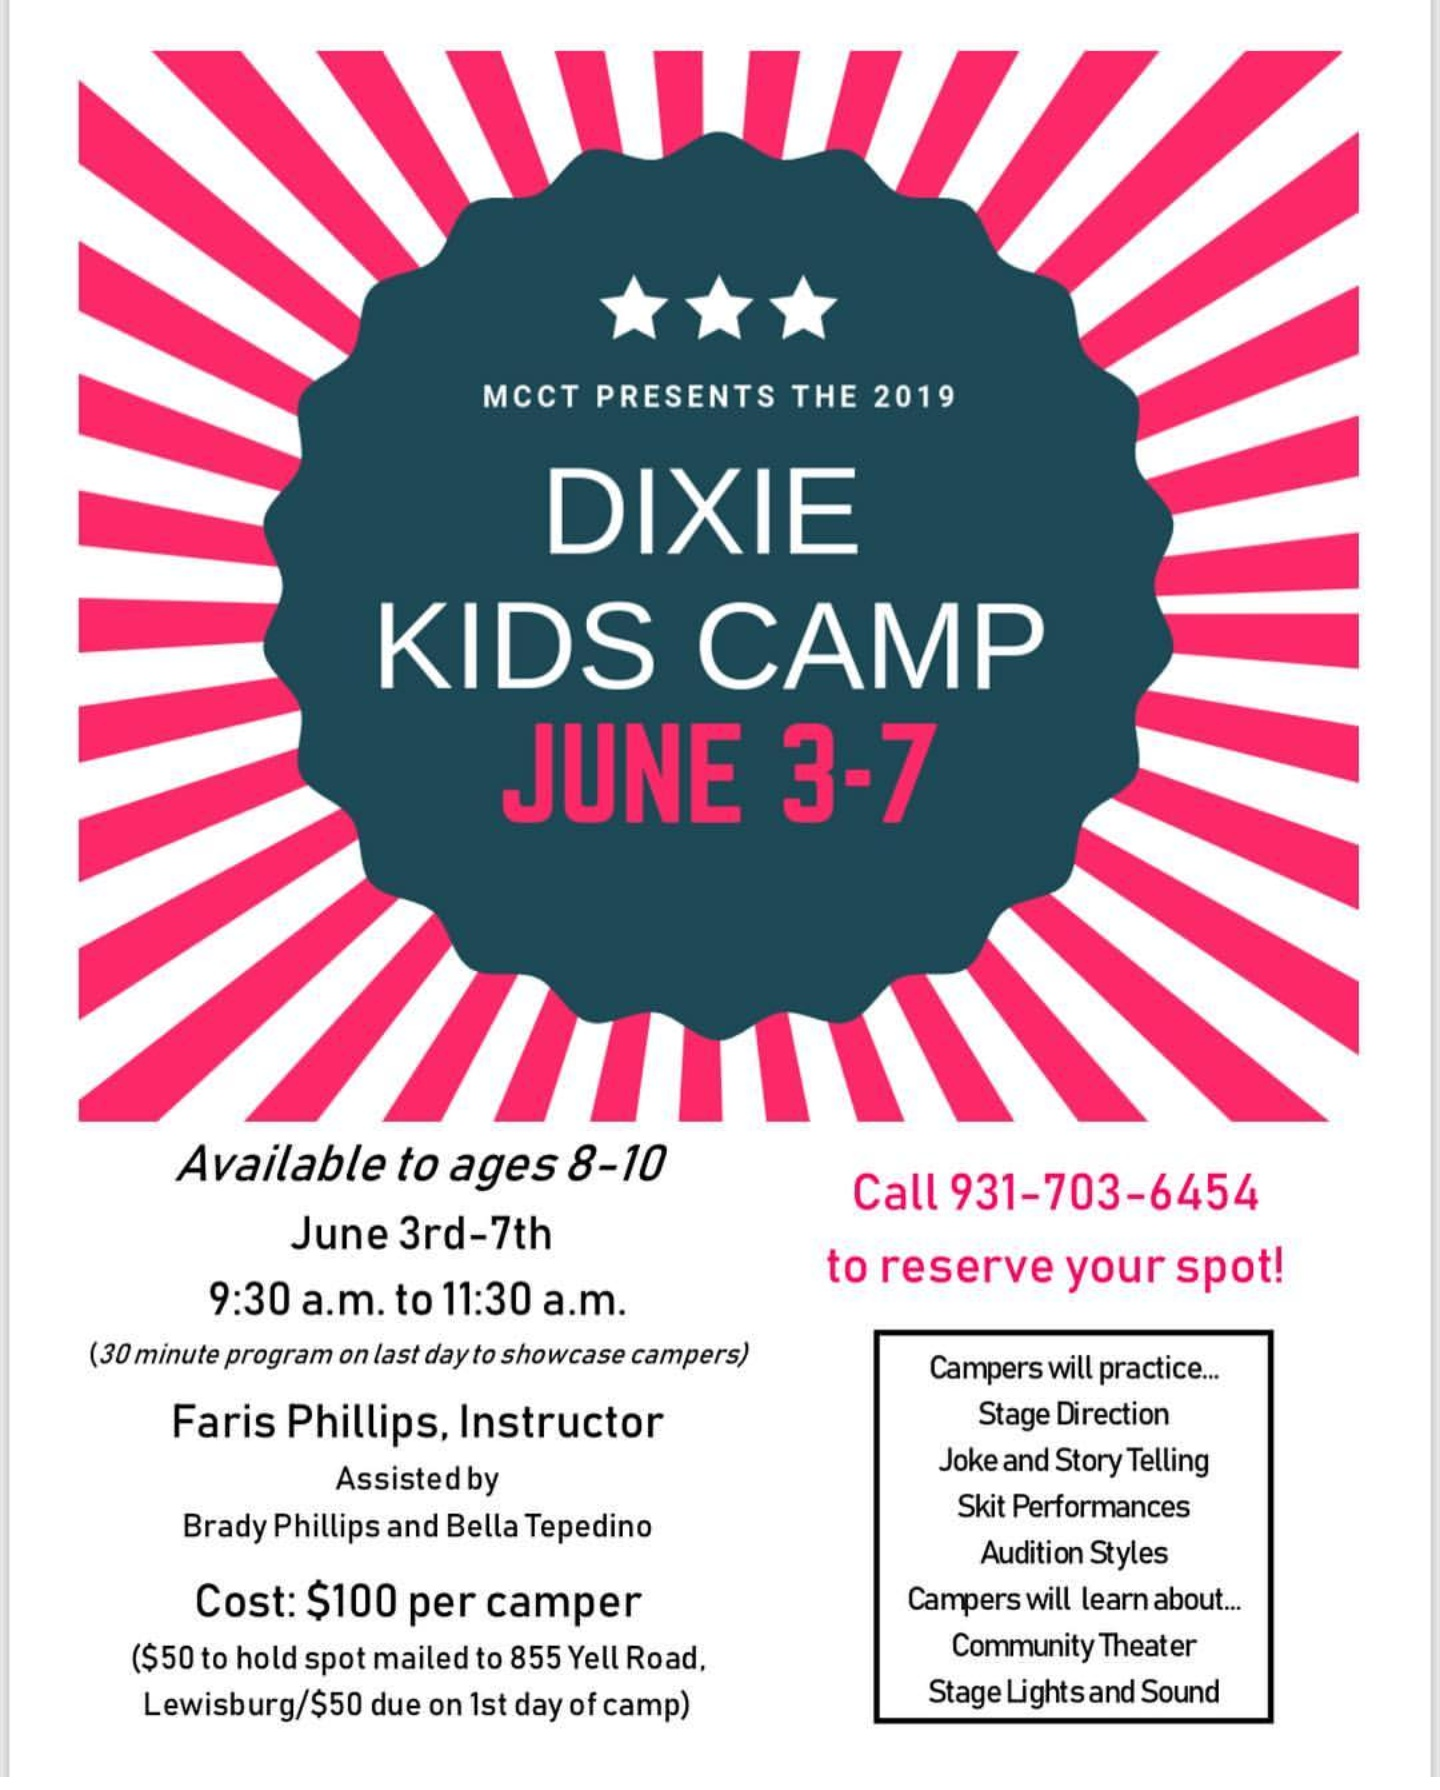 Dixie Kids Camp